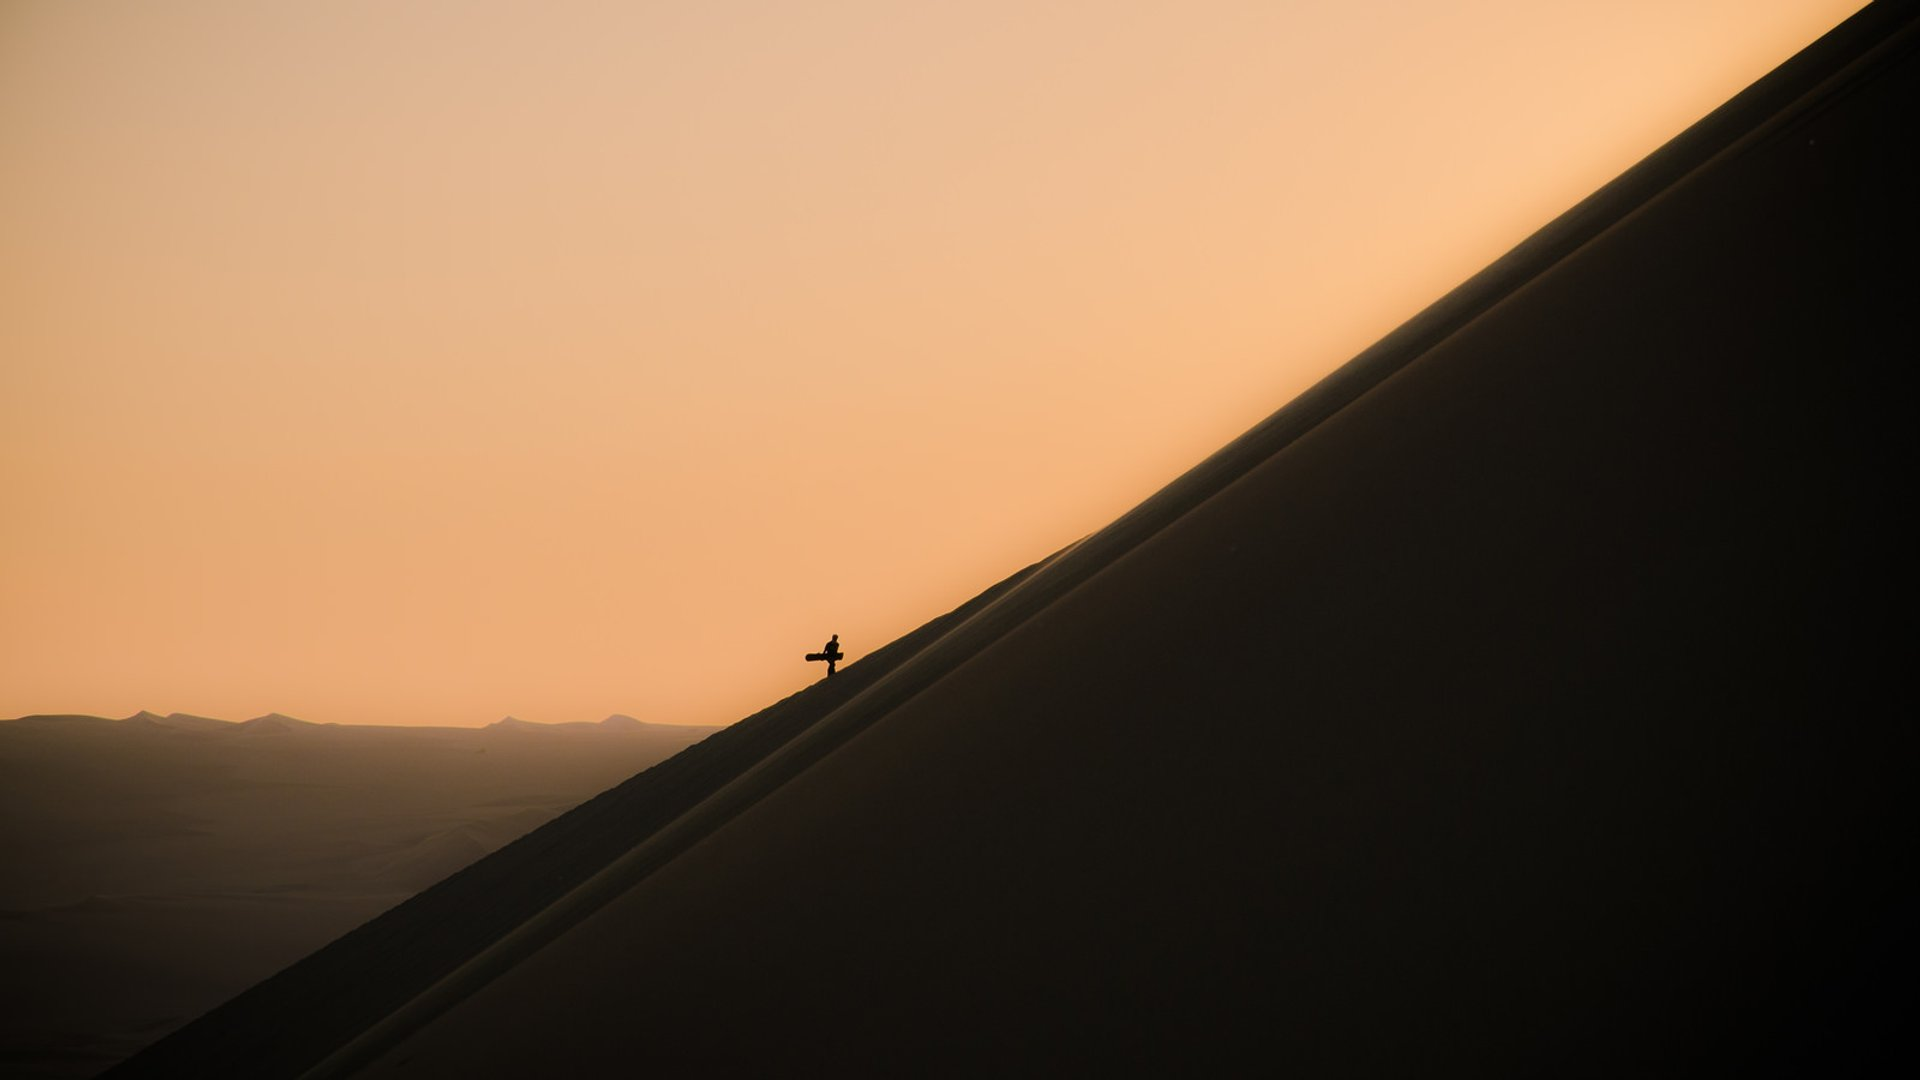 Best time for Sandboarding in Huacachina in Peru